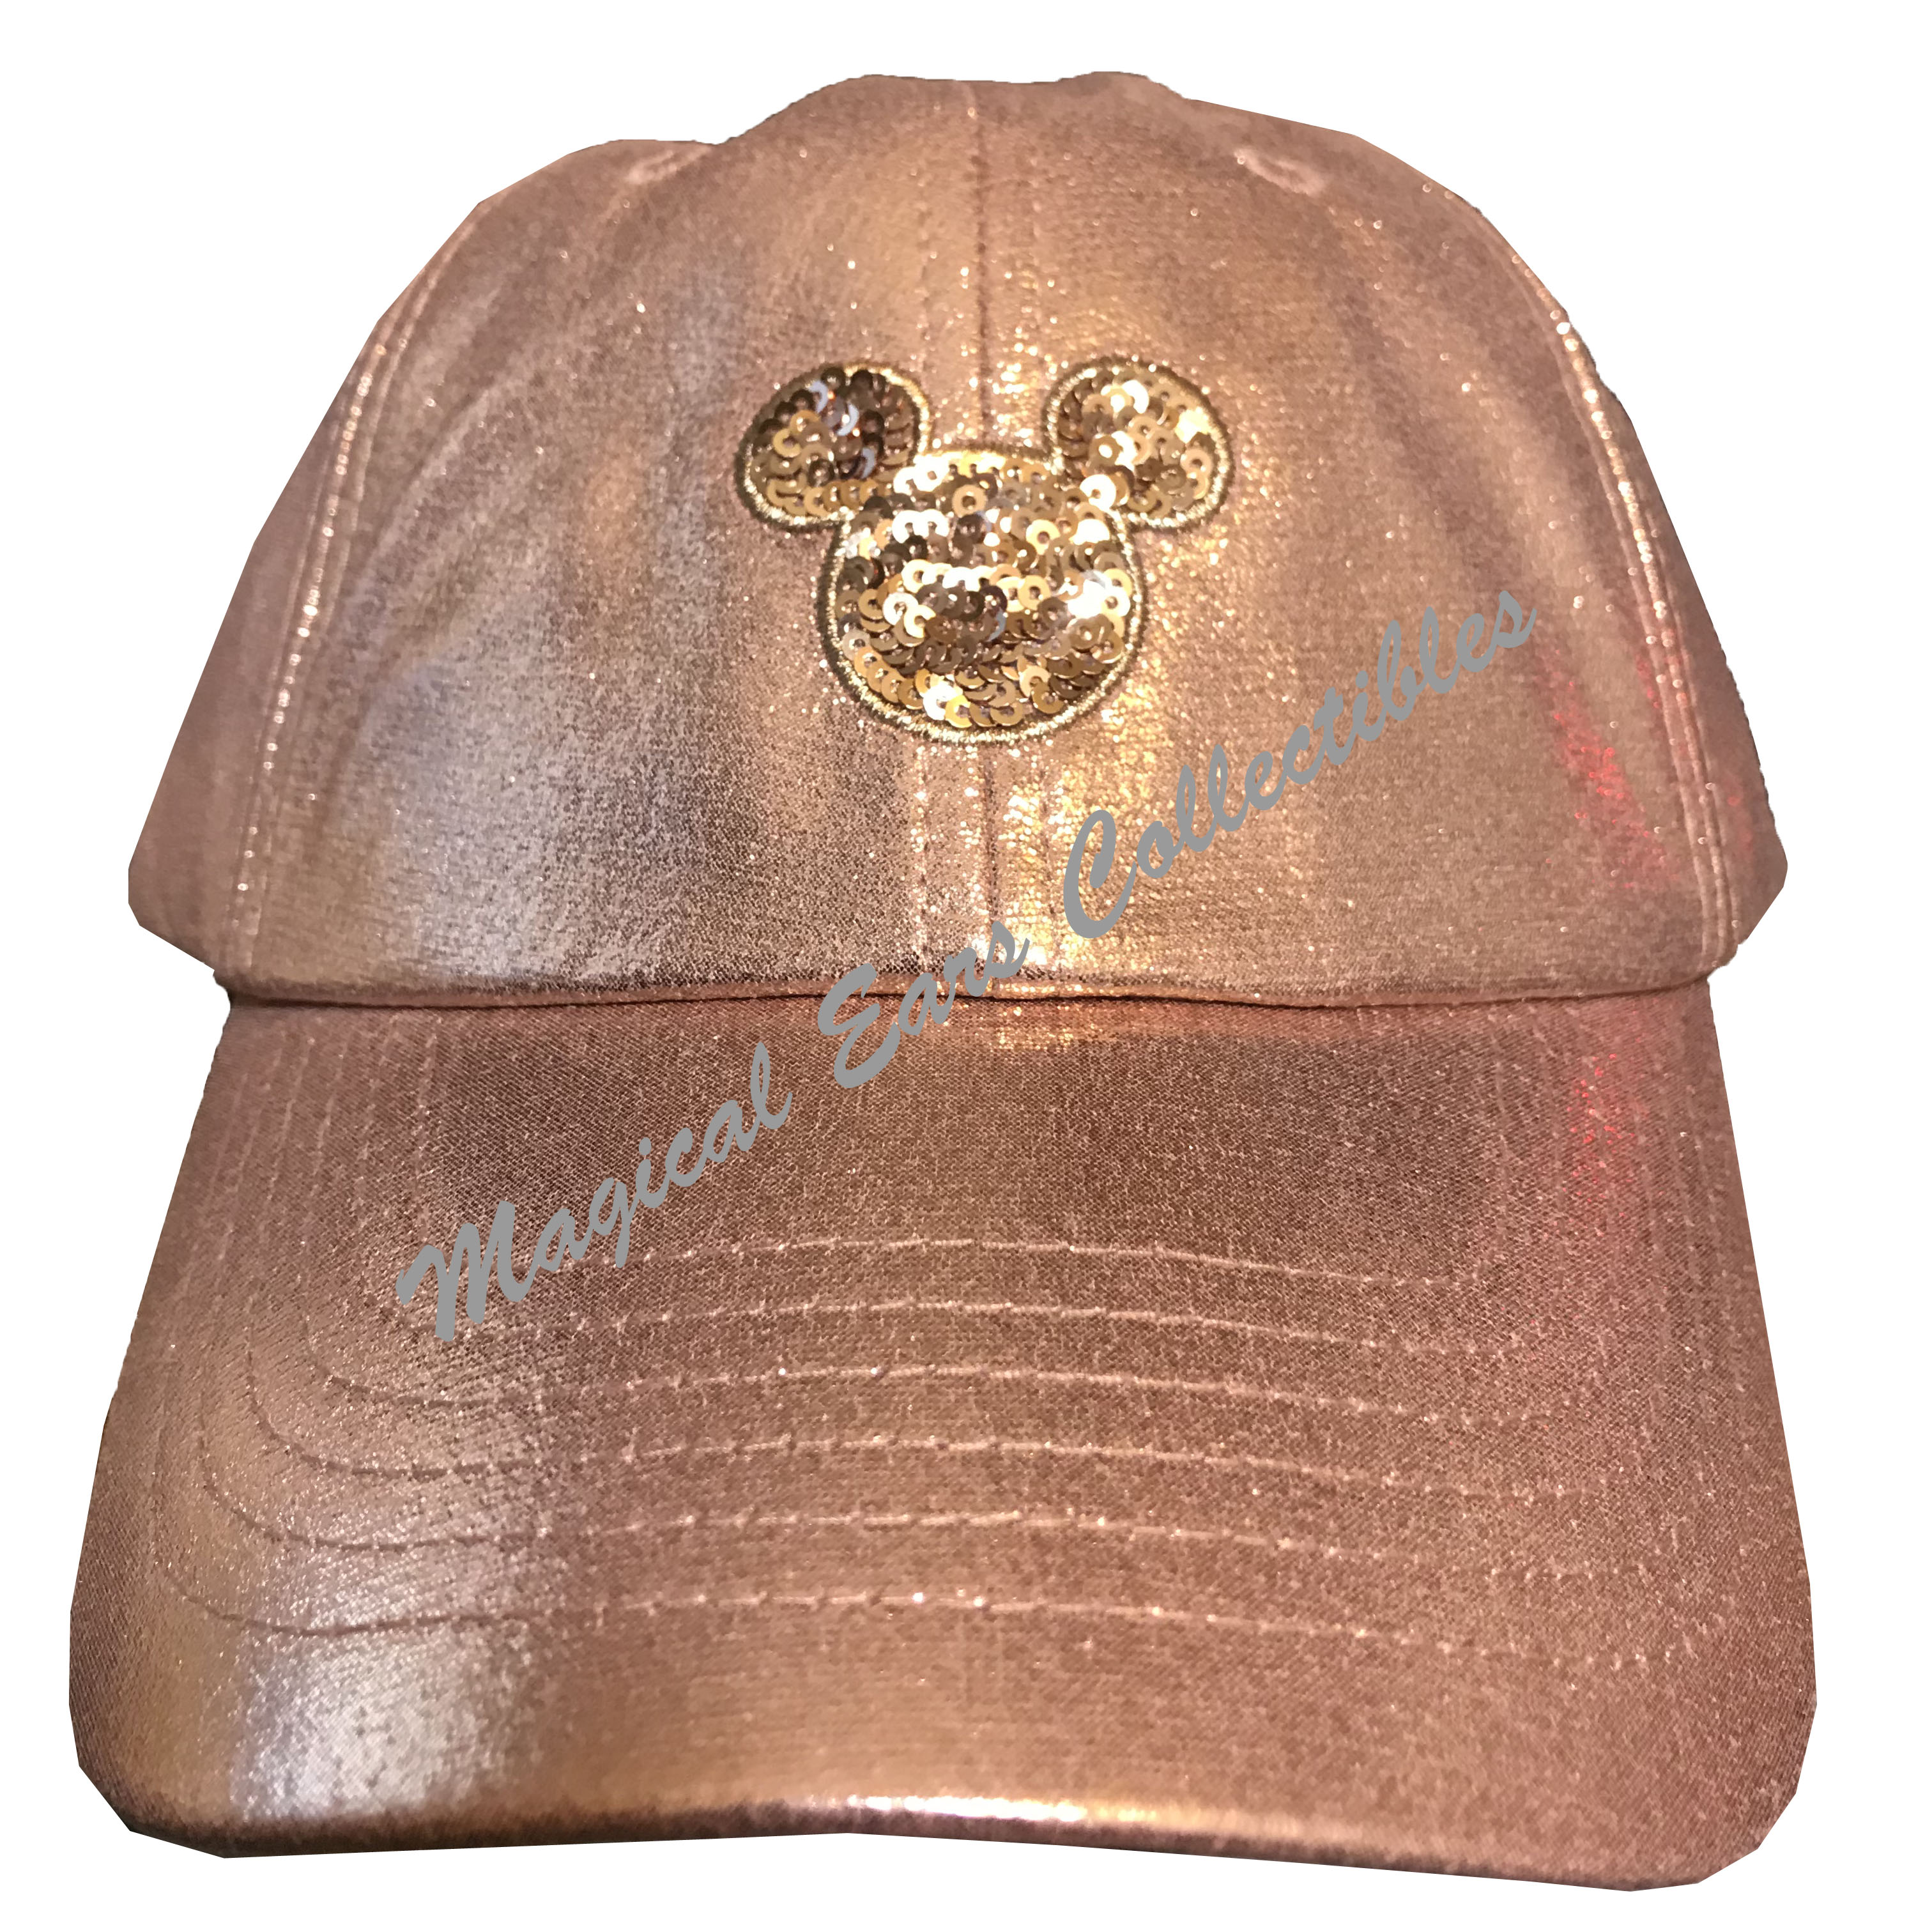 1af0b4b4a36 Disney Hat - Baseball Cap - Mickey Mouse Sequined - Rose Gold